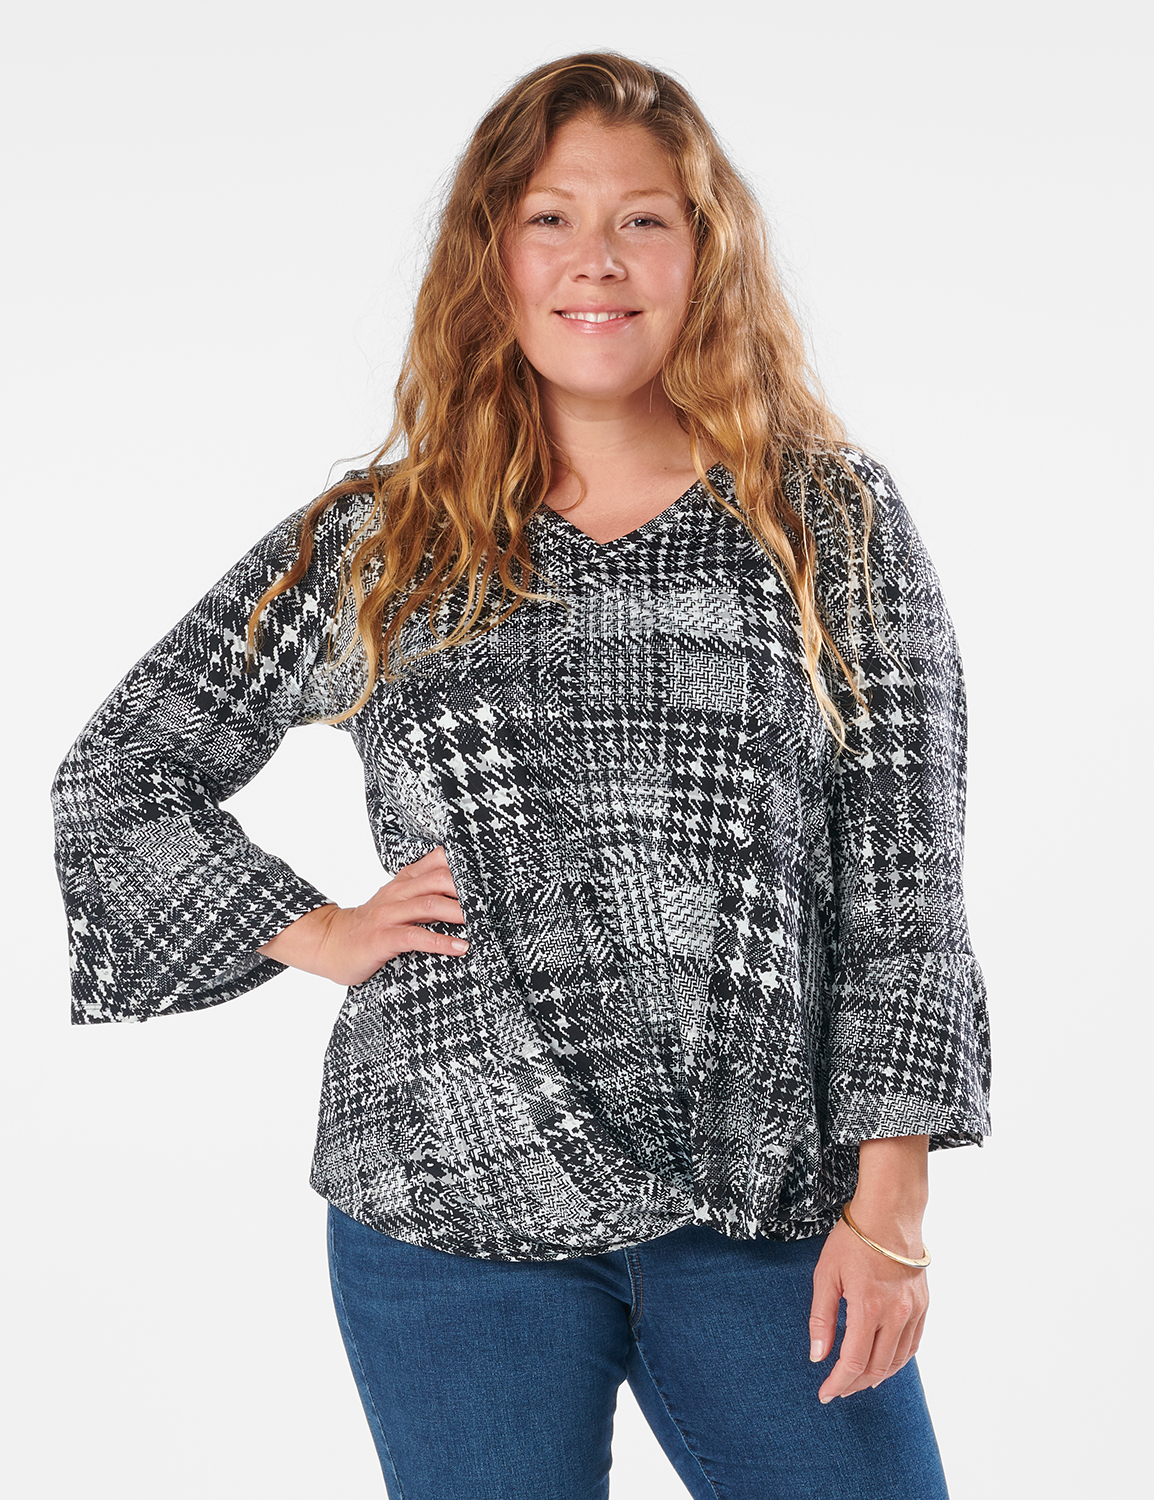 Houndstooth Twist Front Knit Top - Plus - Black/White - Front